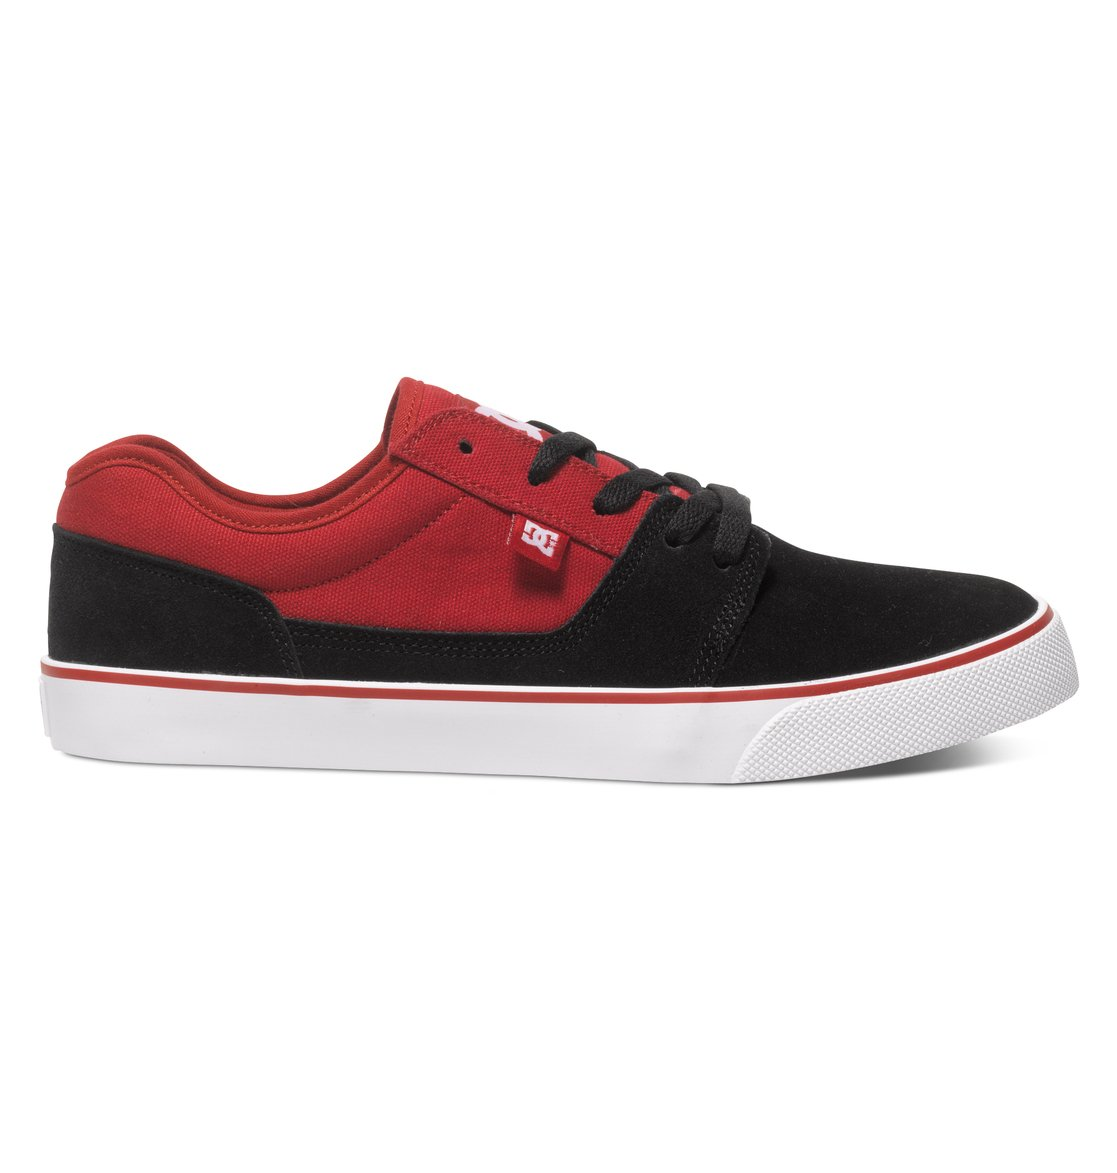 http://static.quiksilver.com/www/store.quiksilver.eu/html/images/catalogs/global/dcshoes-products/all/default/hi-res/302905_tonik,p_blr_frt2.jpg